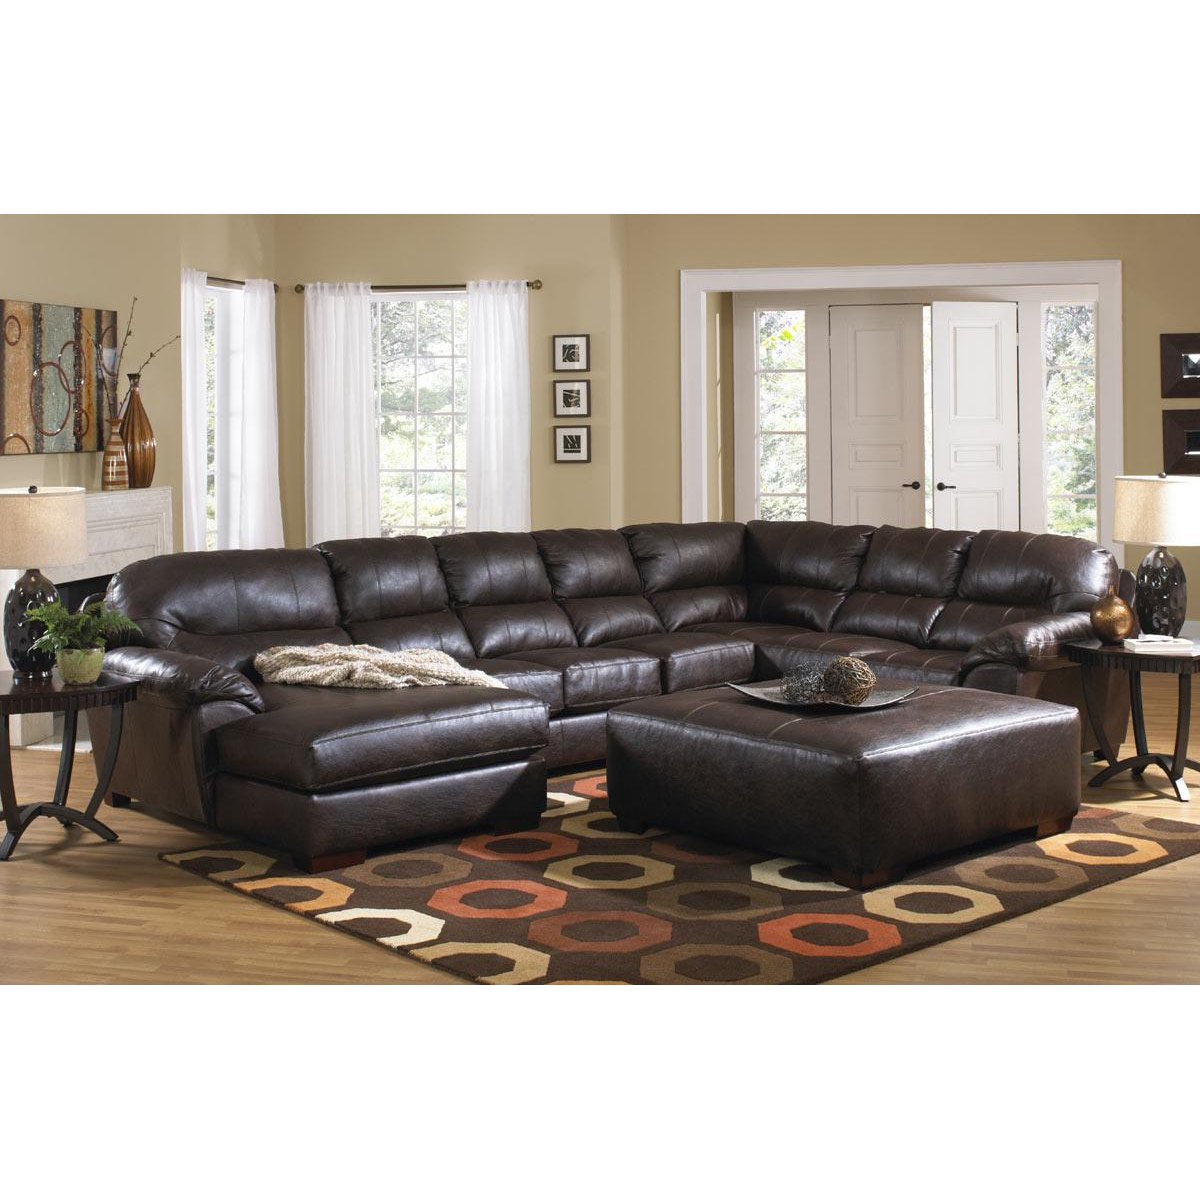 Rc Willey Store: Lawson Brown Upholstered 3 Piece Sectional